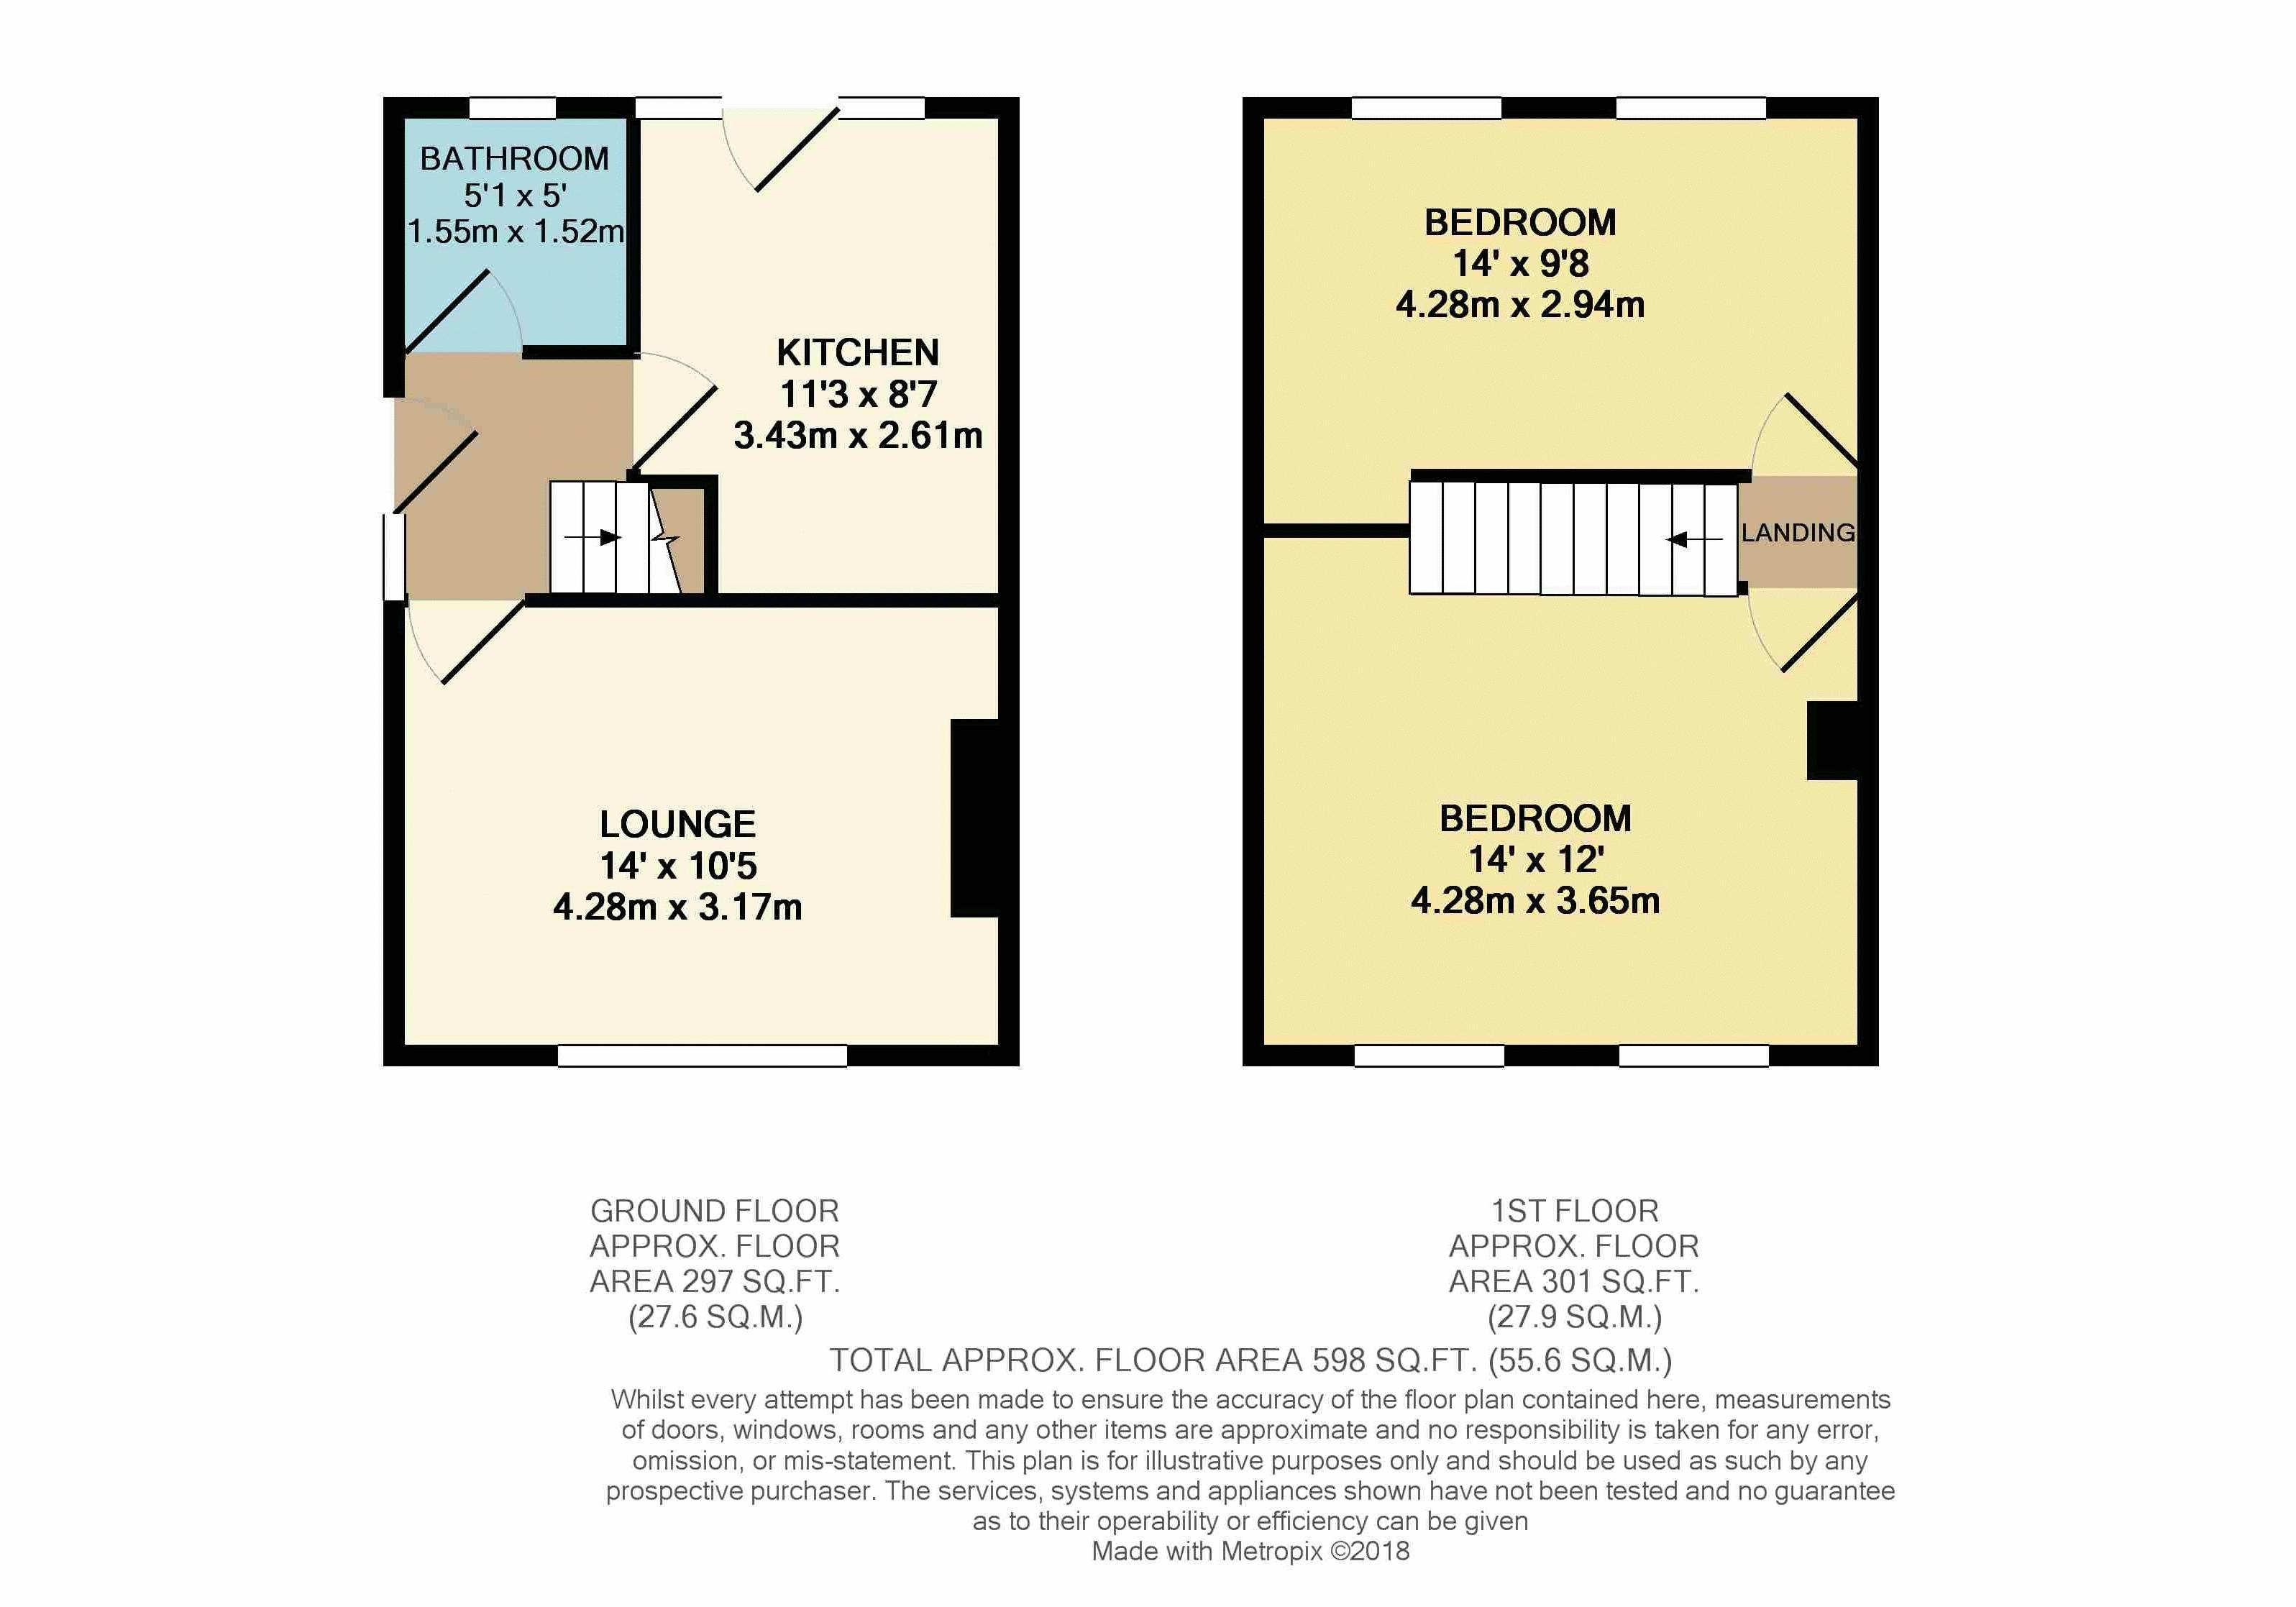 2 bedroom semi detached house for sale in luton for How much is a bedroom worth in an appraisal